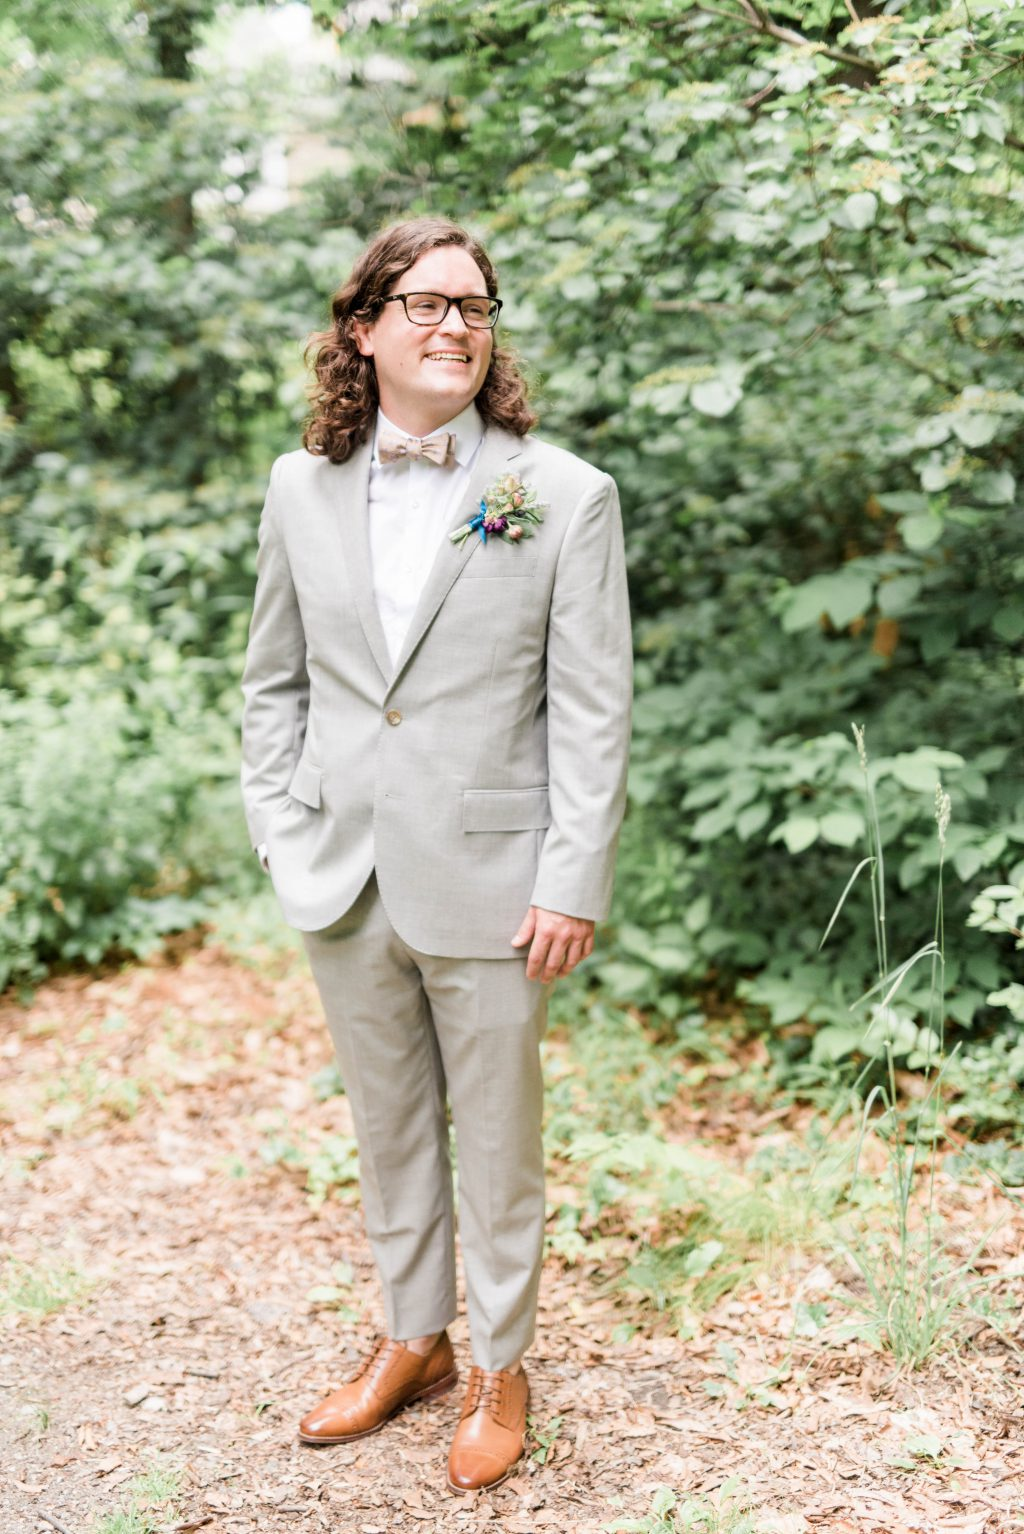 awbury-arboretum-wedding-DIY-boho-summer-haley-richter-photography-102